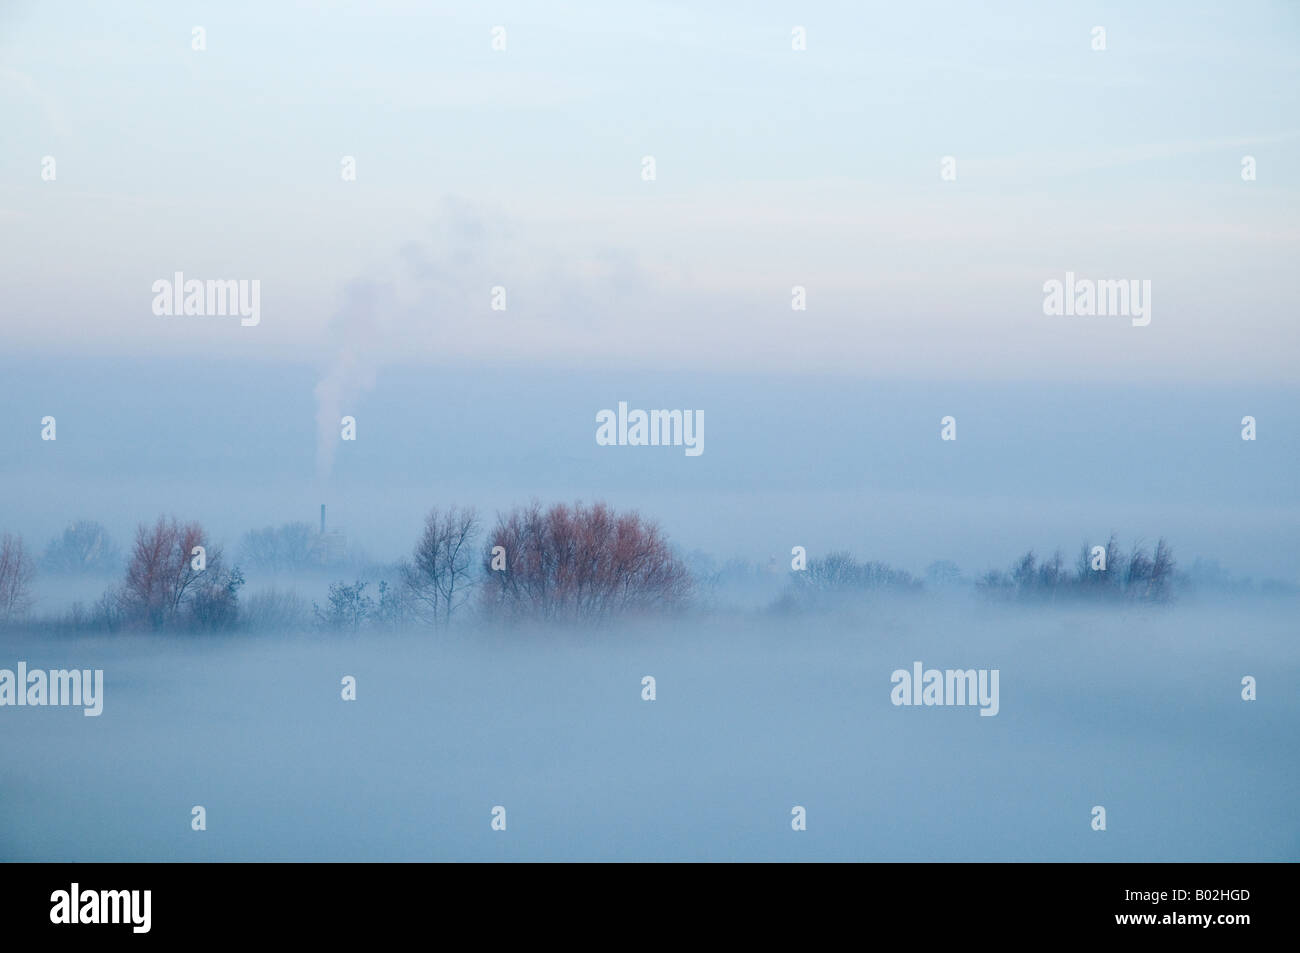 Misty Winter Scene - Stock Image